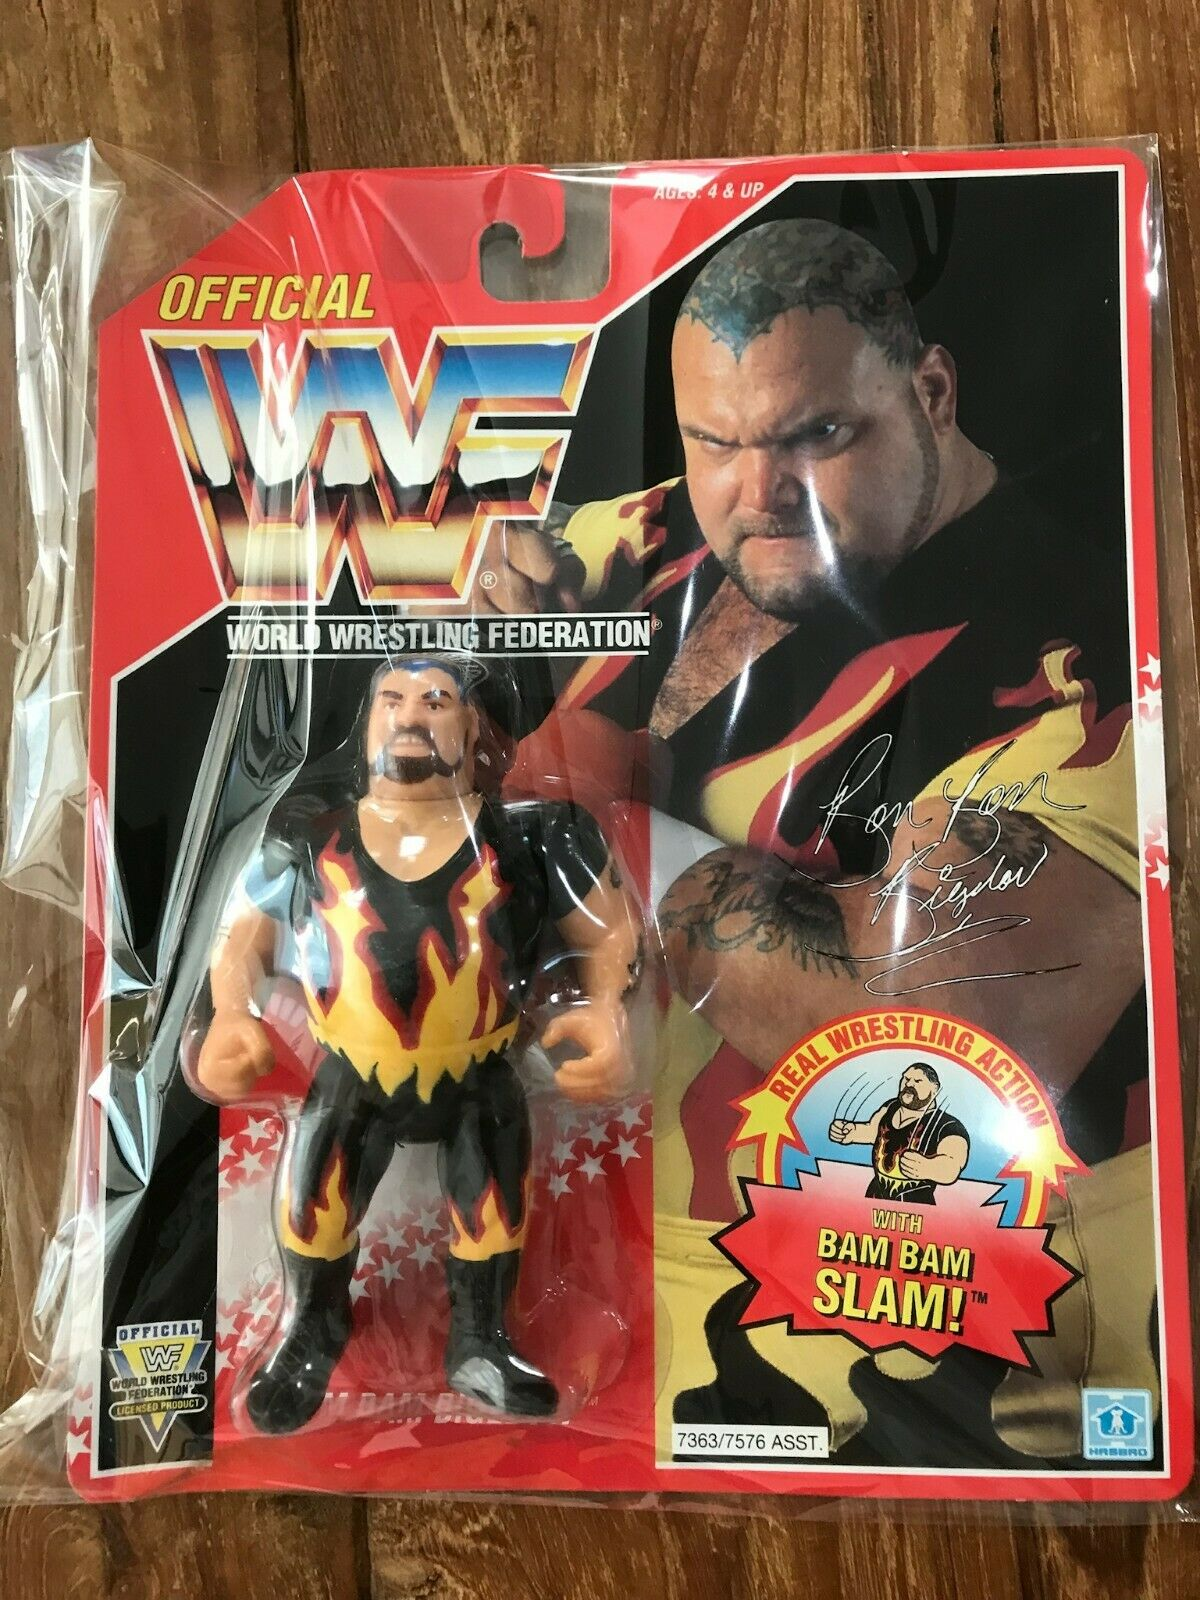 Hasbro Official cifra WWF WWE Bam Bam greeelow Wrestling 1994 rosso autod Vintage